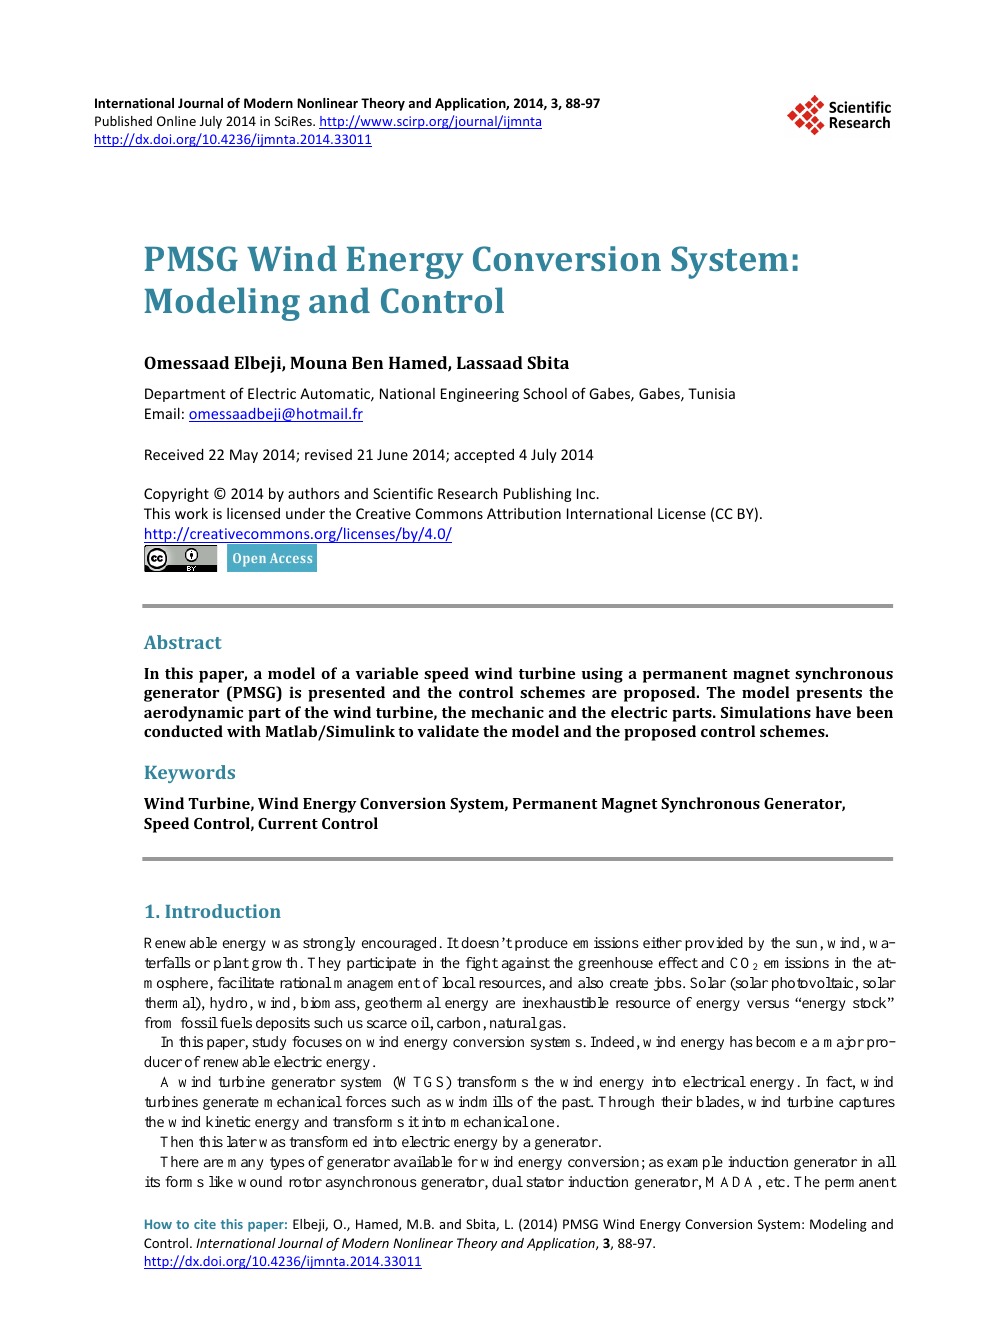 PMSG Wind Energy Conversion System: Modeling and Control